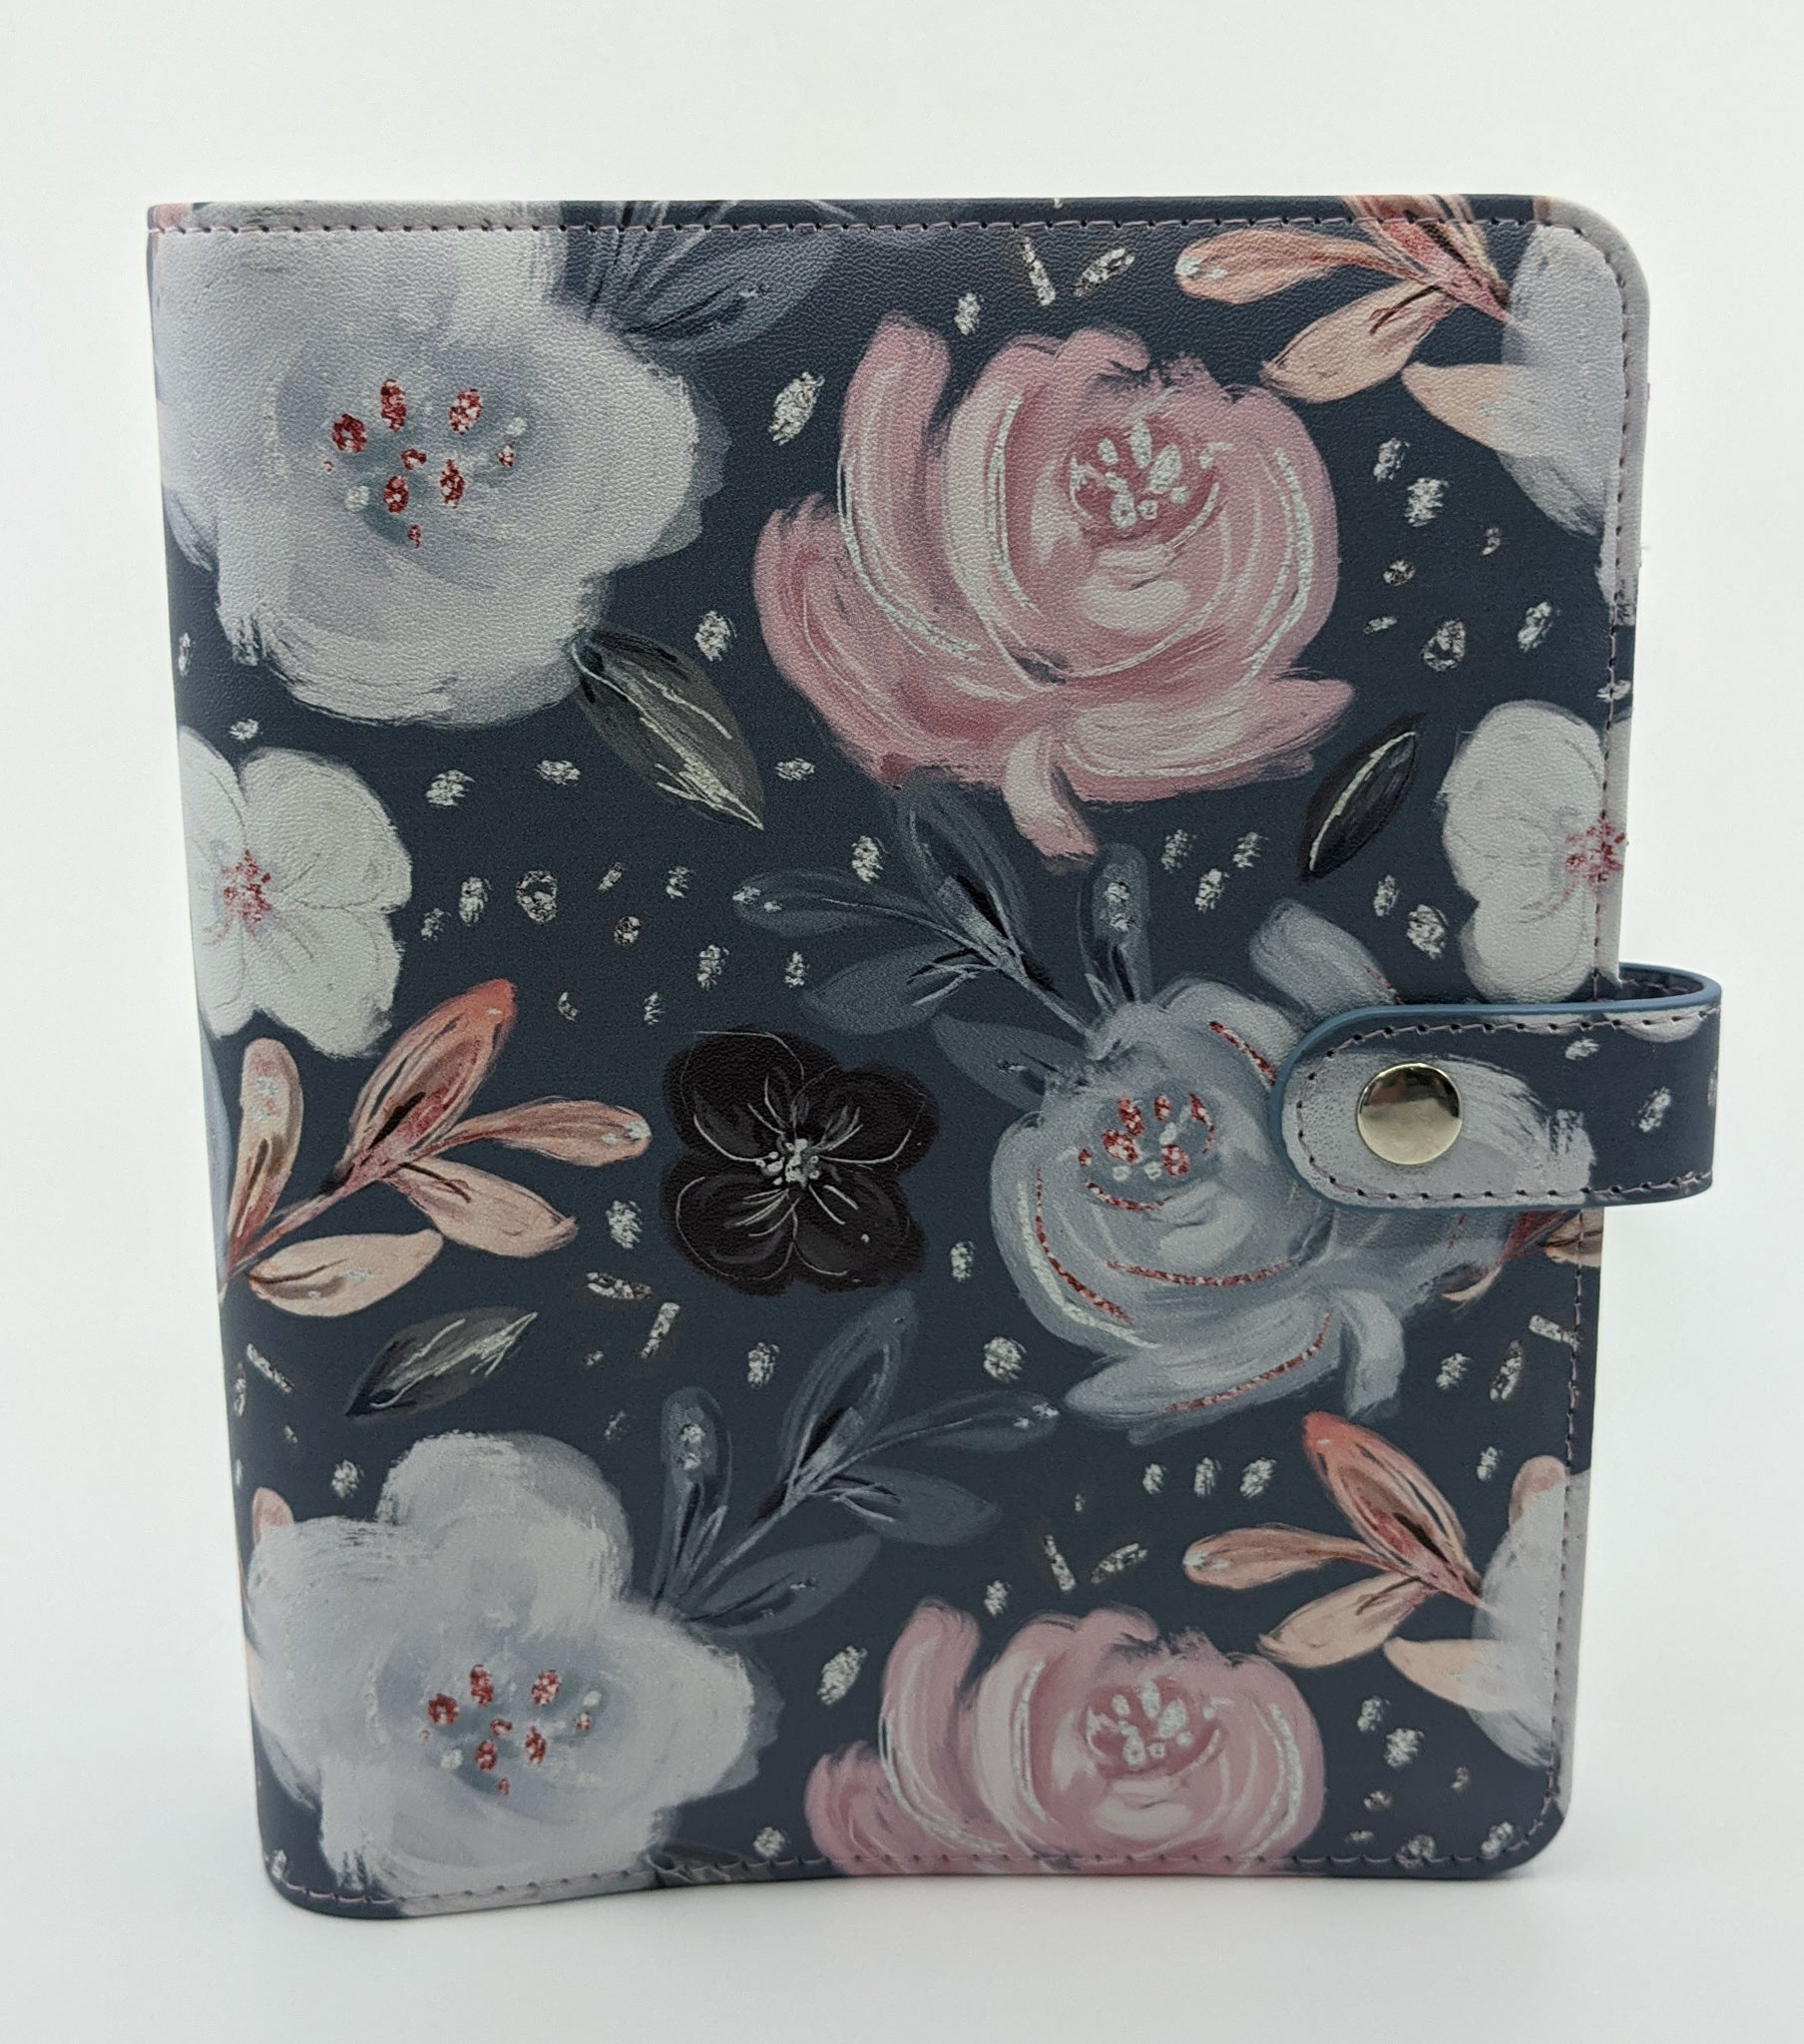 Moonlit Blooms B6 Ring Planner